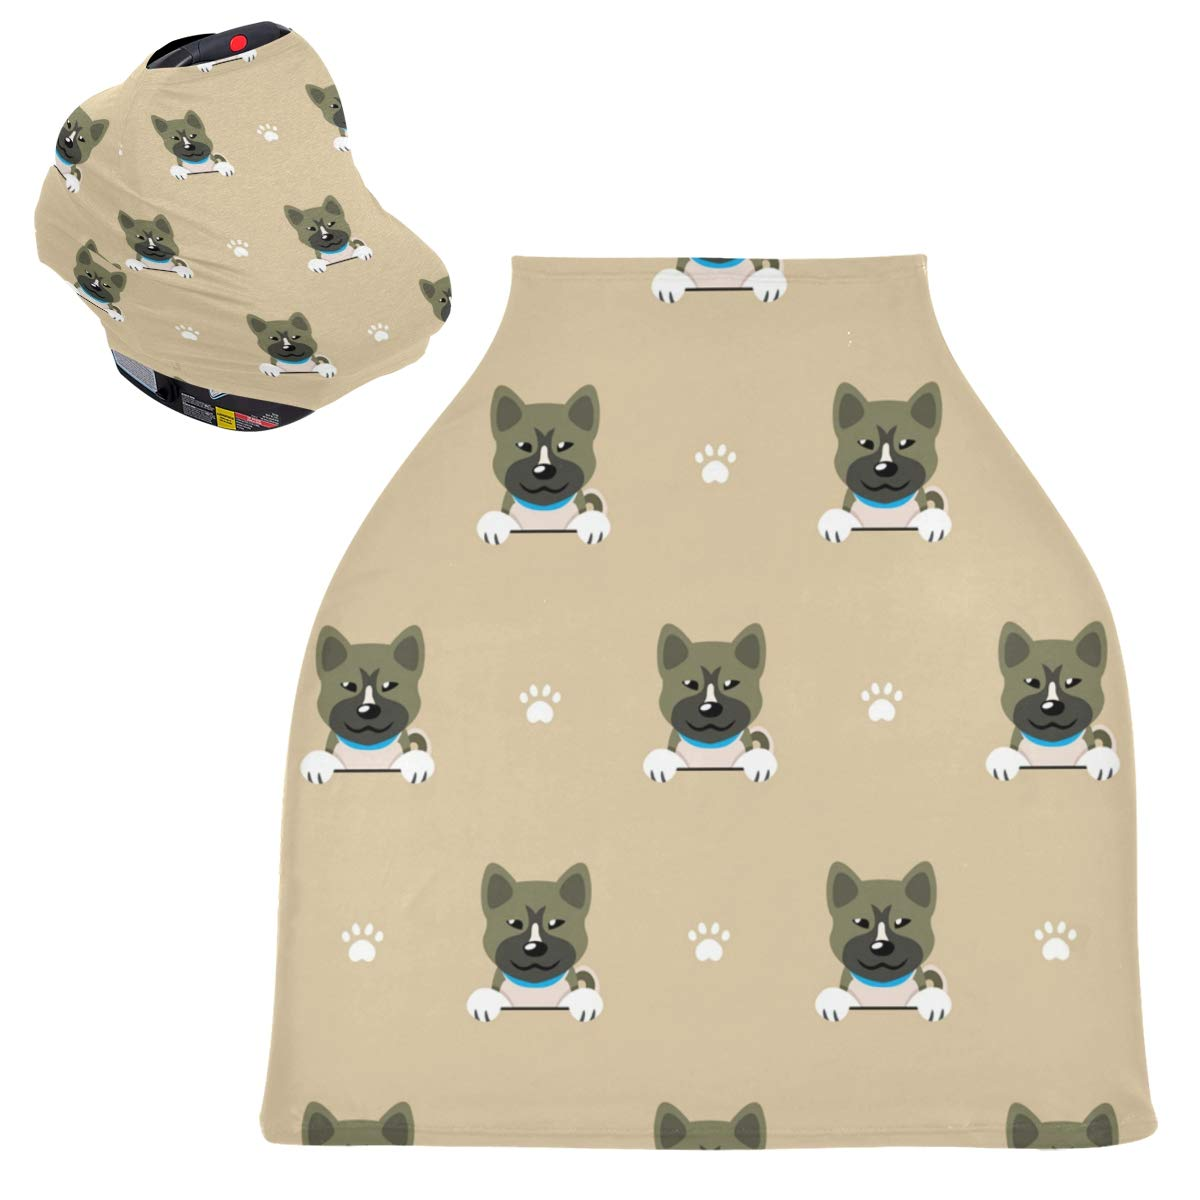 Stretchy Baby Car Seat Canopy - Character Akita Dog Infant Stroller Cover Multi Use Carseat Scarf Nursing Cover for Shopping Cart